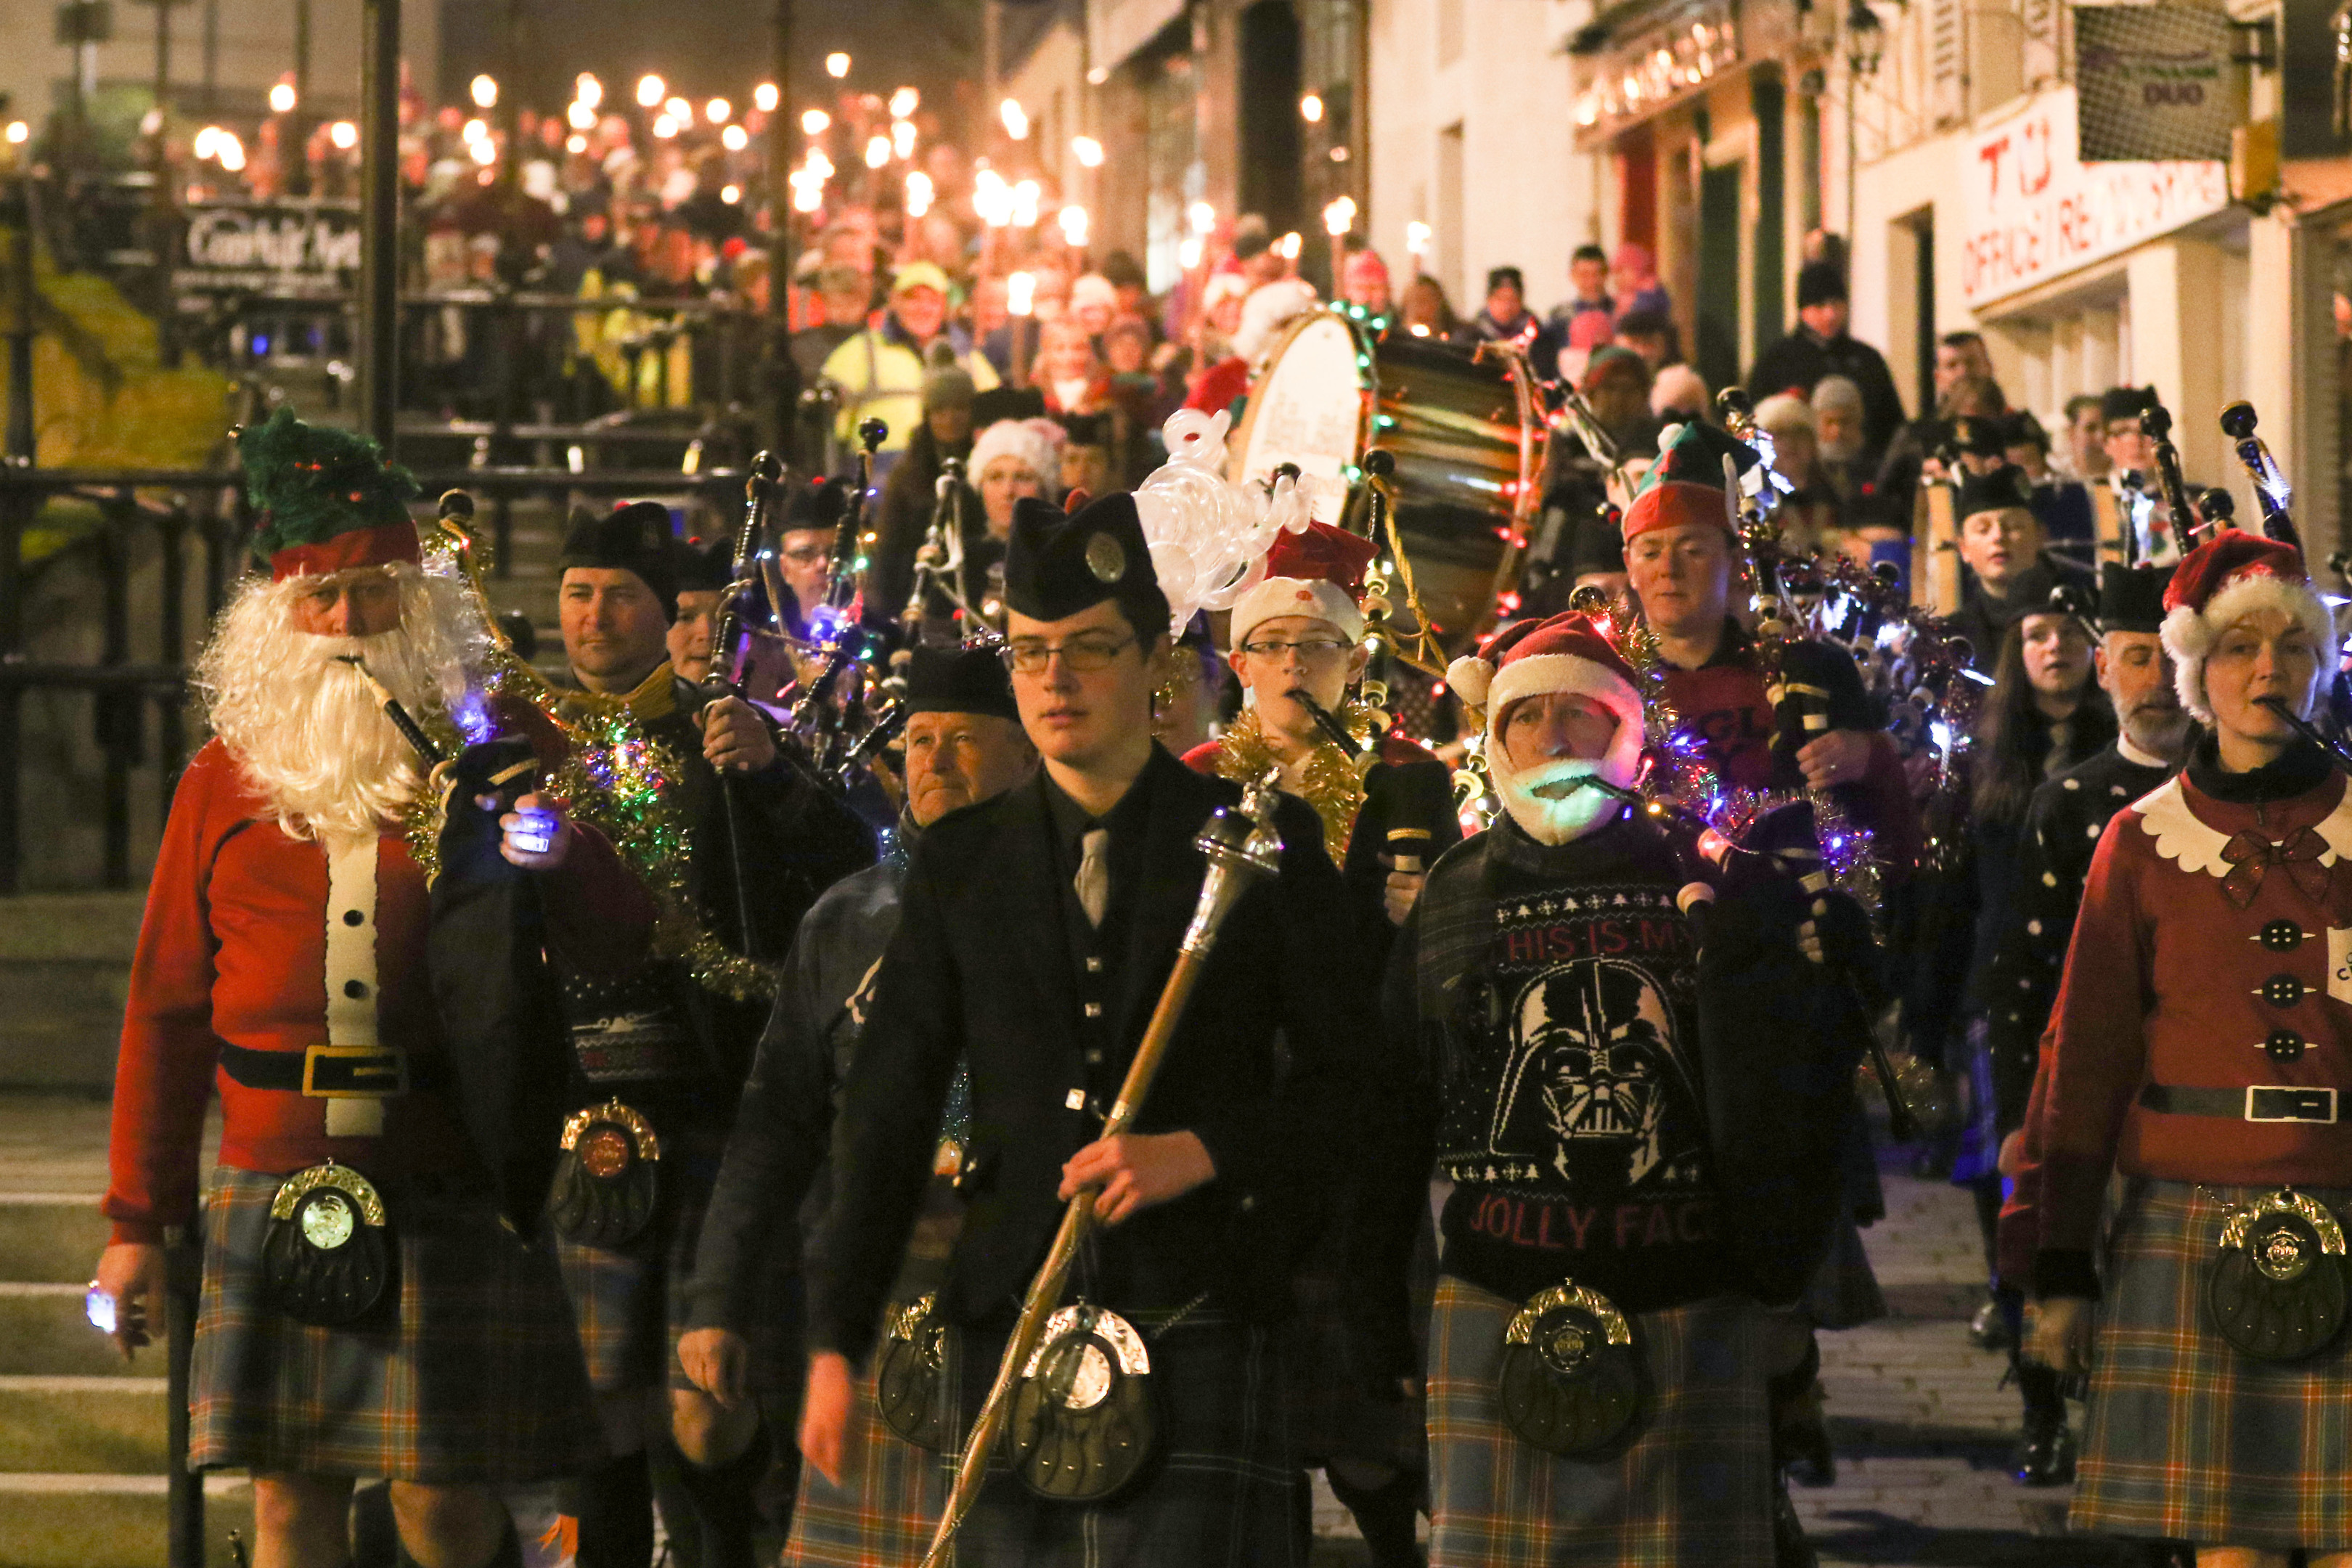 19 November 2017: Inverness Christmas Lights switch on. This pic: Parade down Stephen's Brae. Picture: Andrew Smith